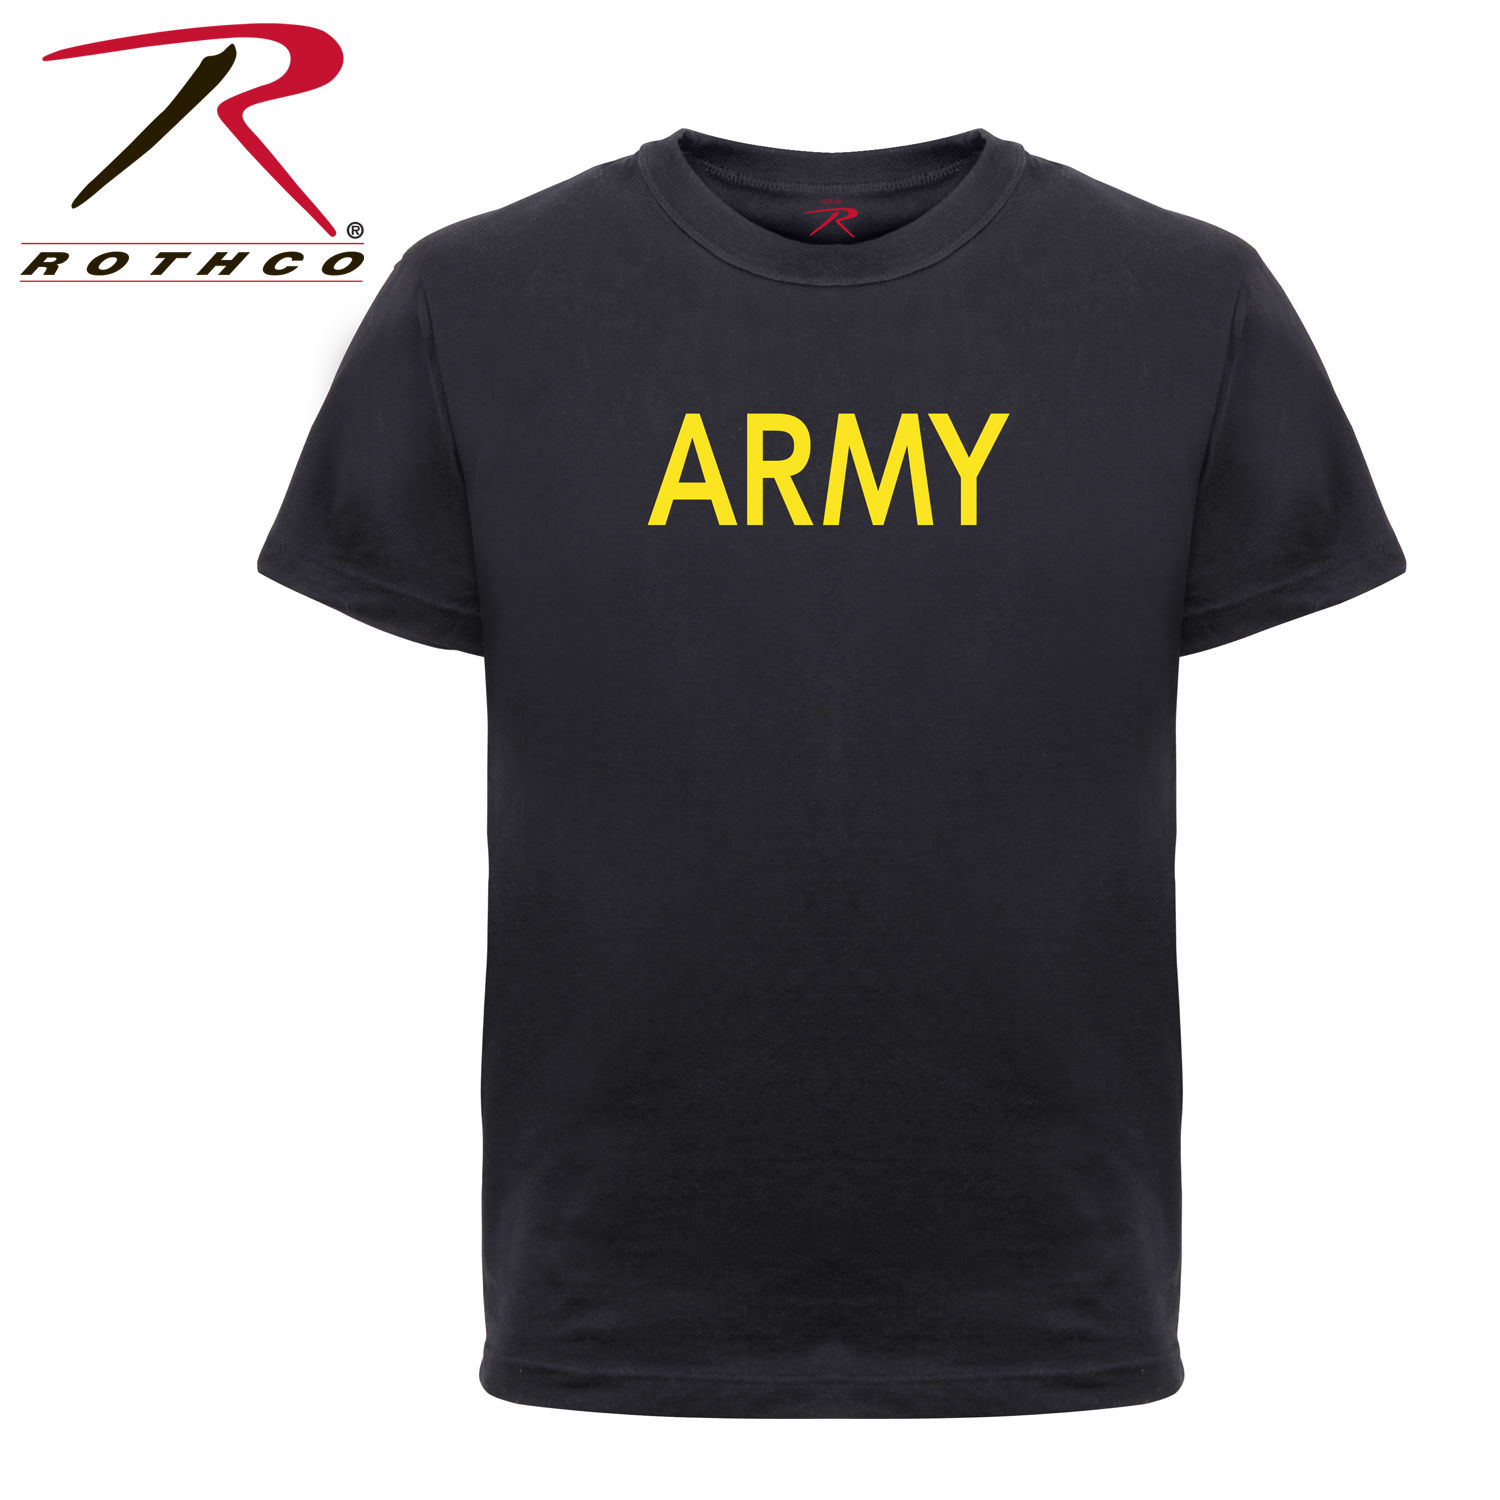 9abb6d8d Rothco Kids Army Physical Training T-Shirt, t-shirt for kids, kids. Loading  zoom